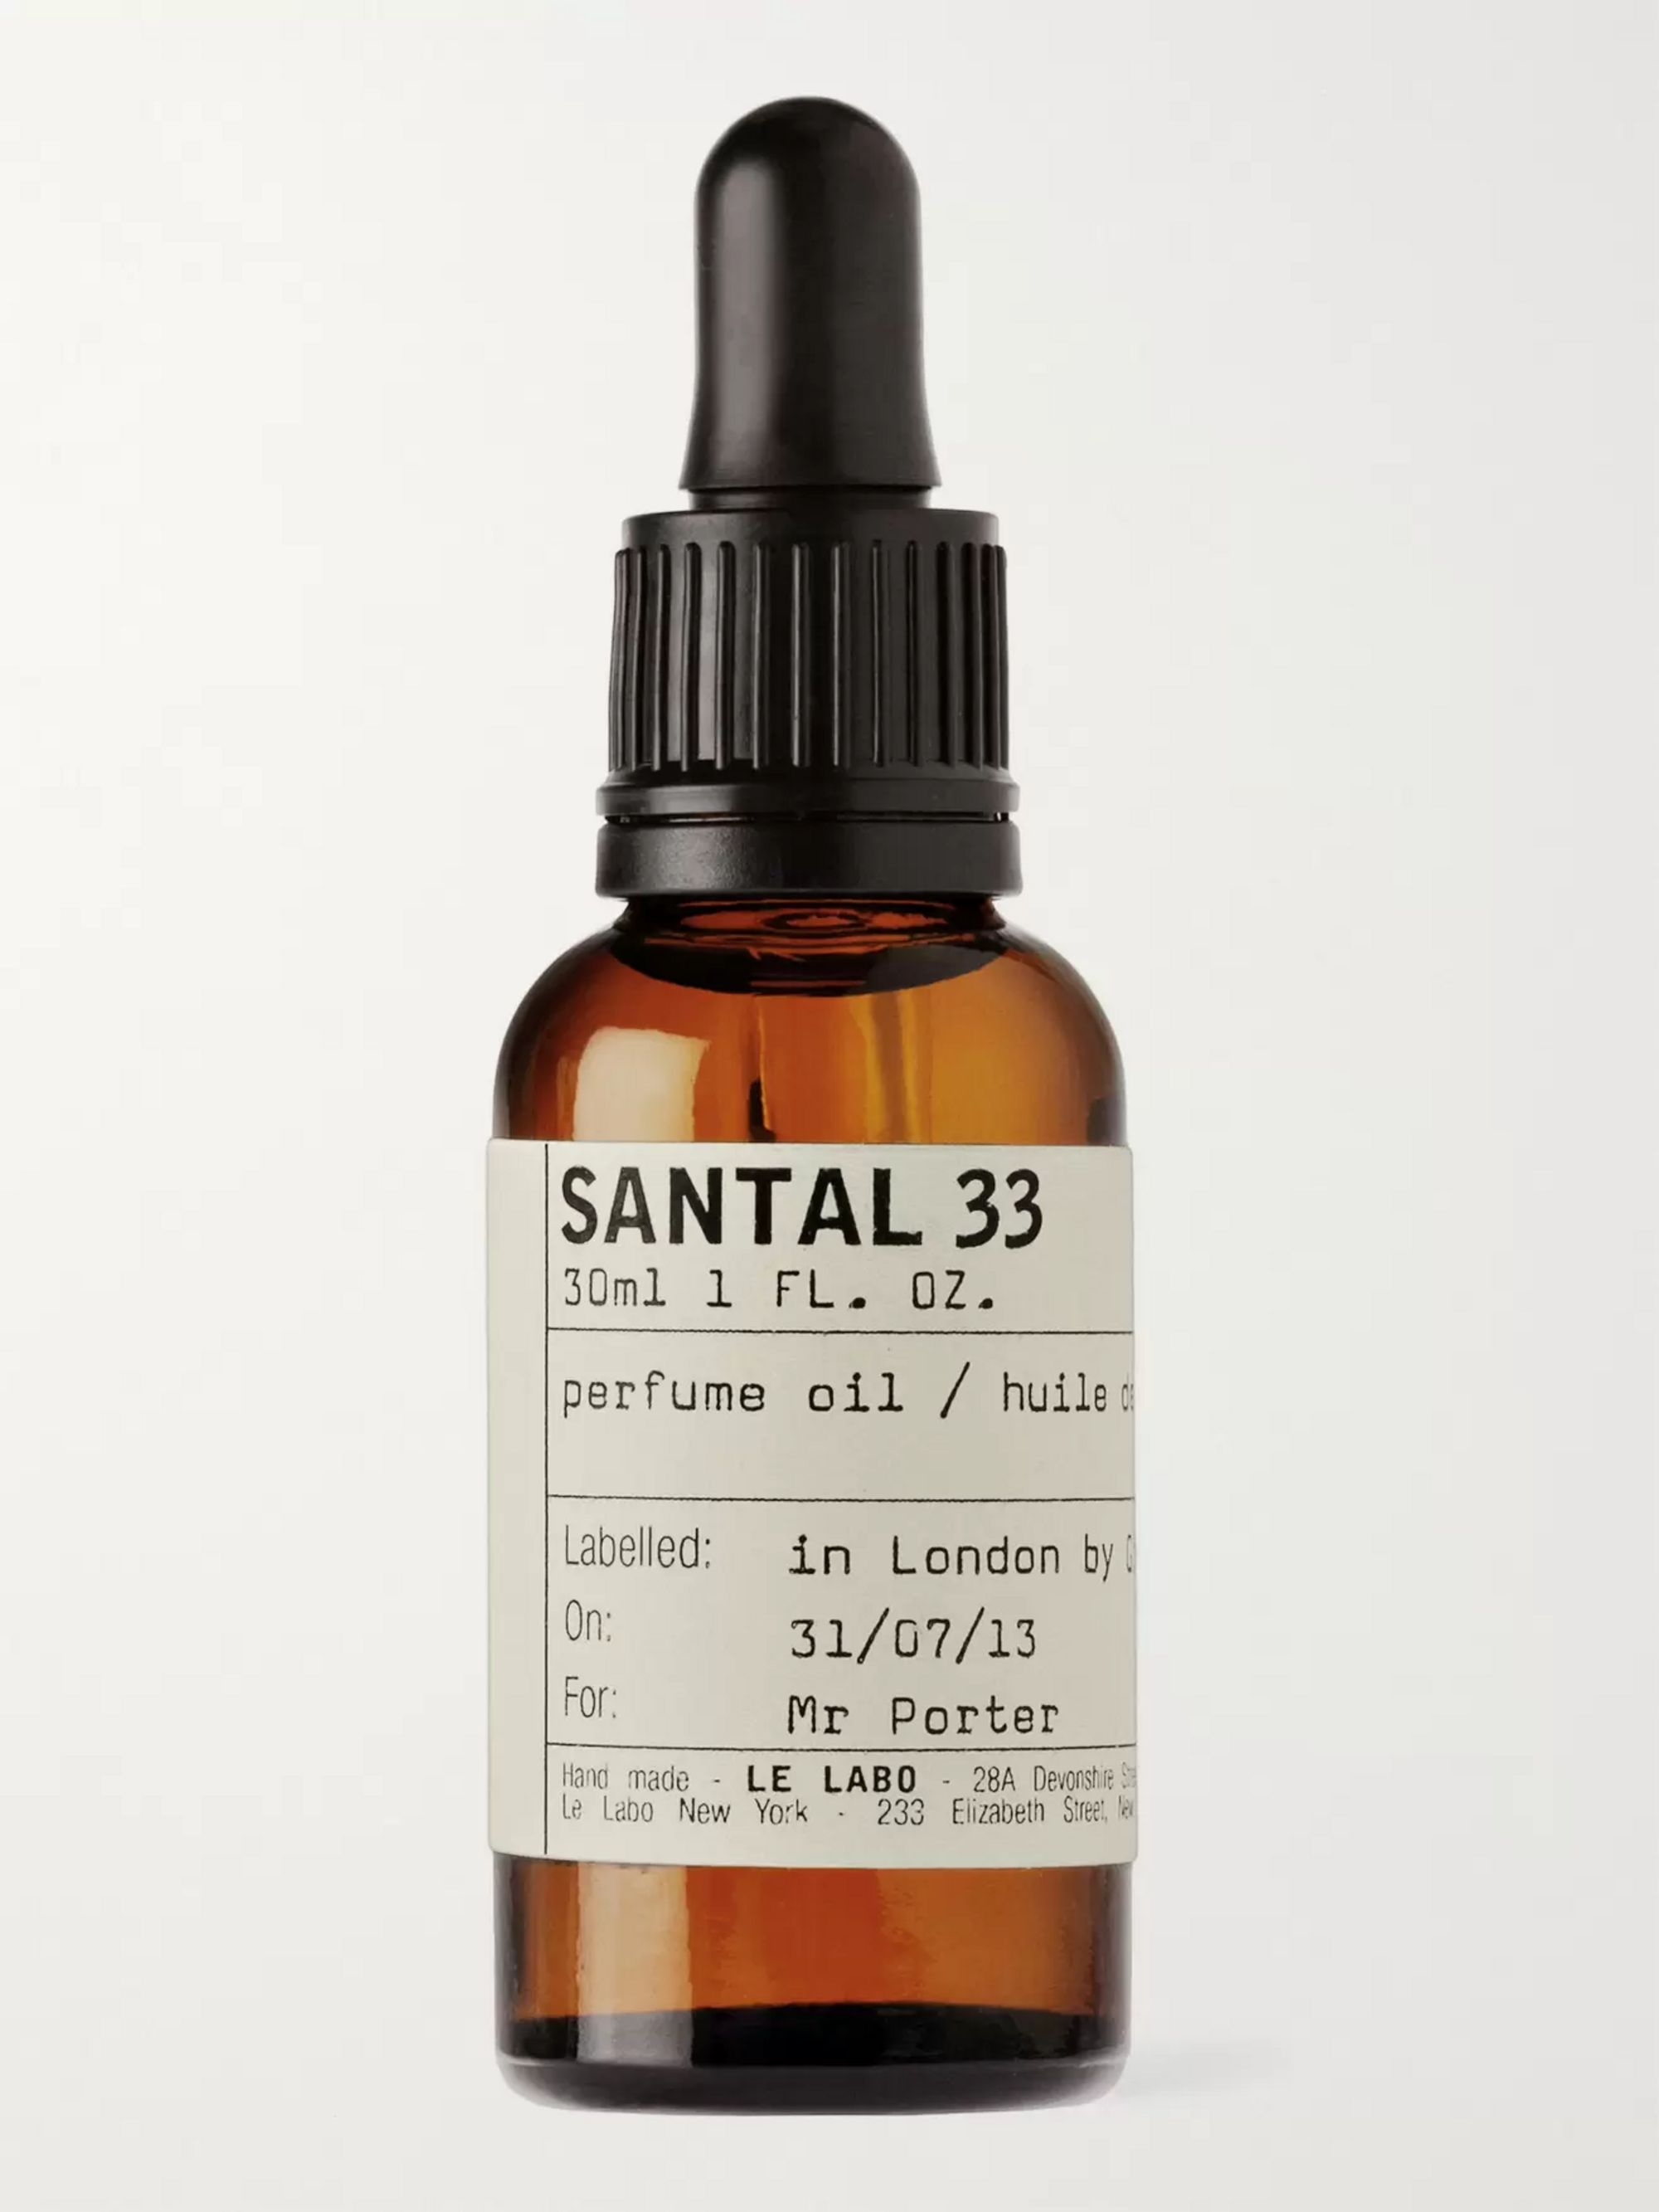 Le Labo Santal 33 Perfume Oil - Sandalwood & Cardamom, 30ml